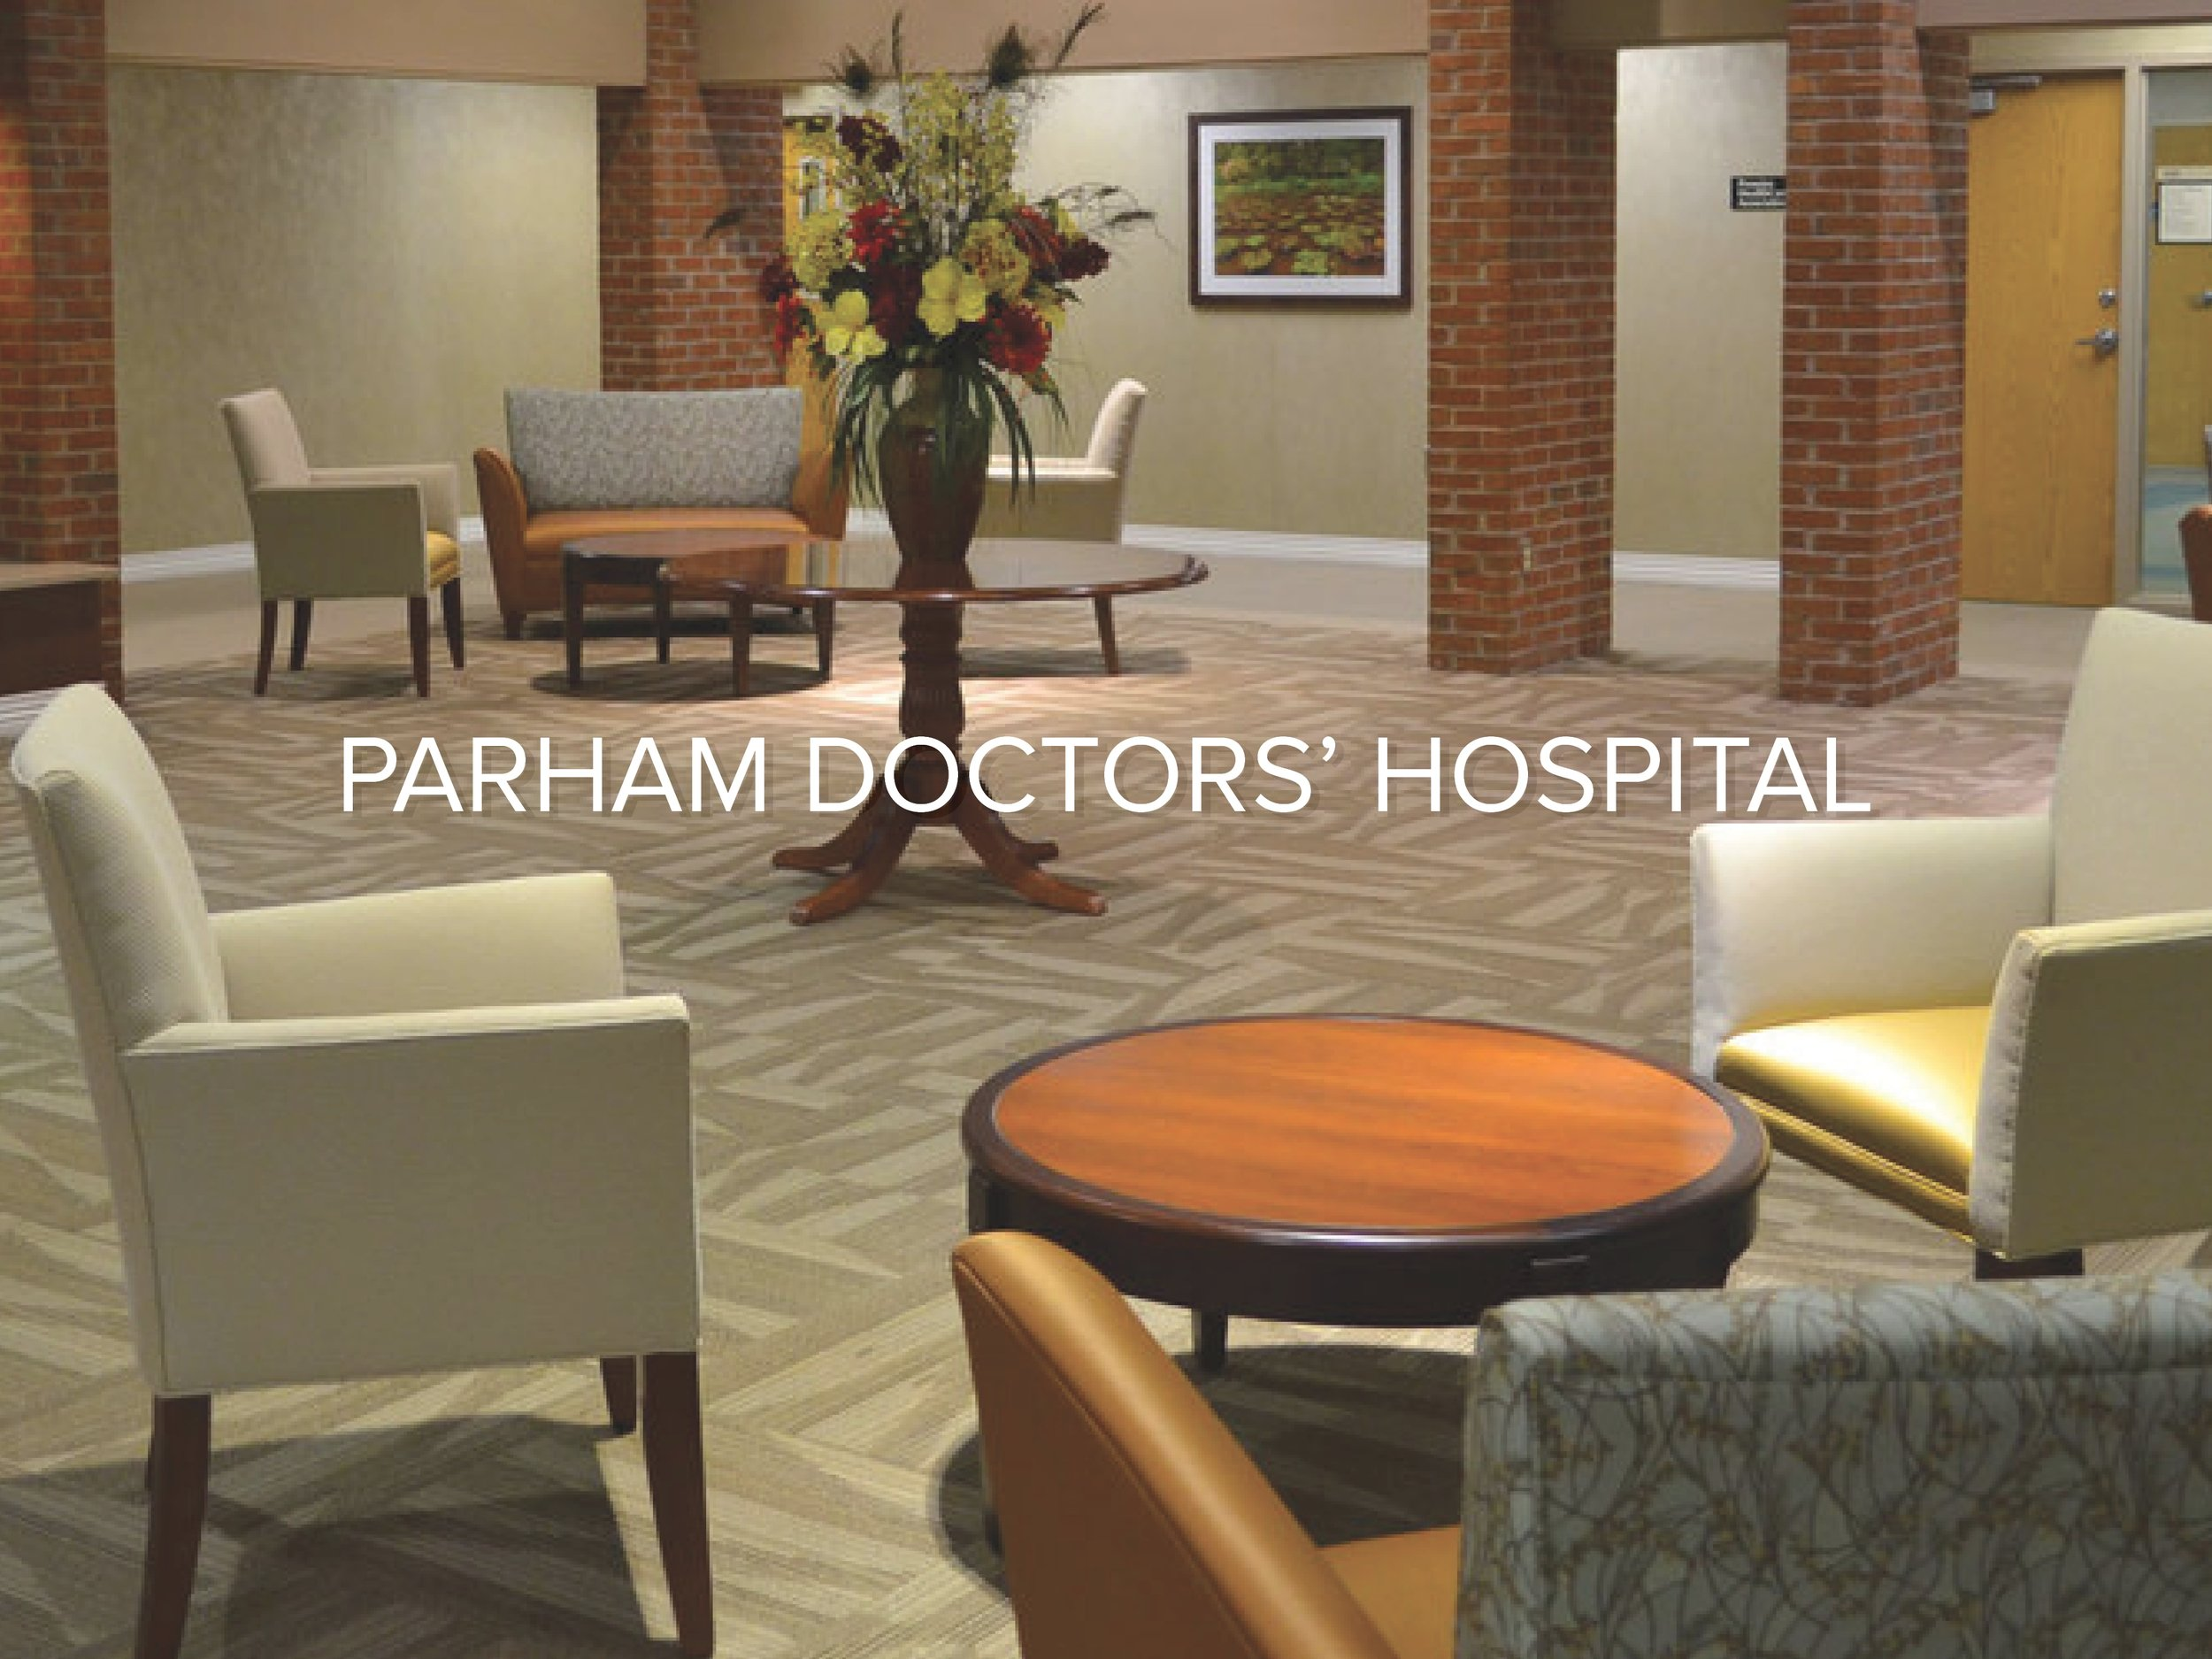 Parham Doctors' Hospital.jpg